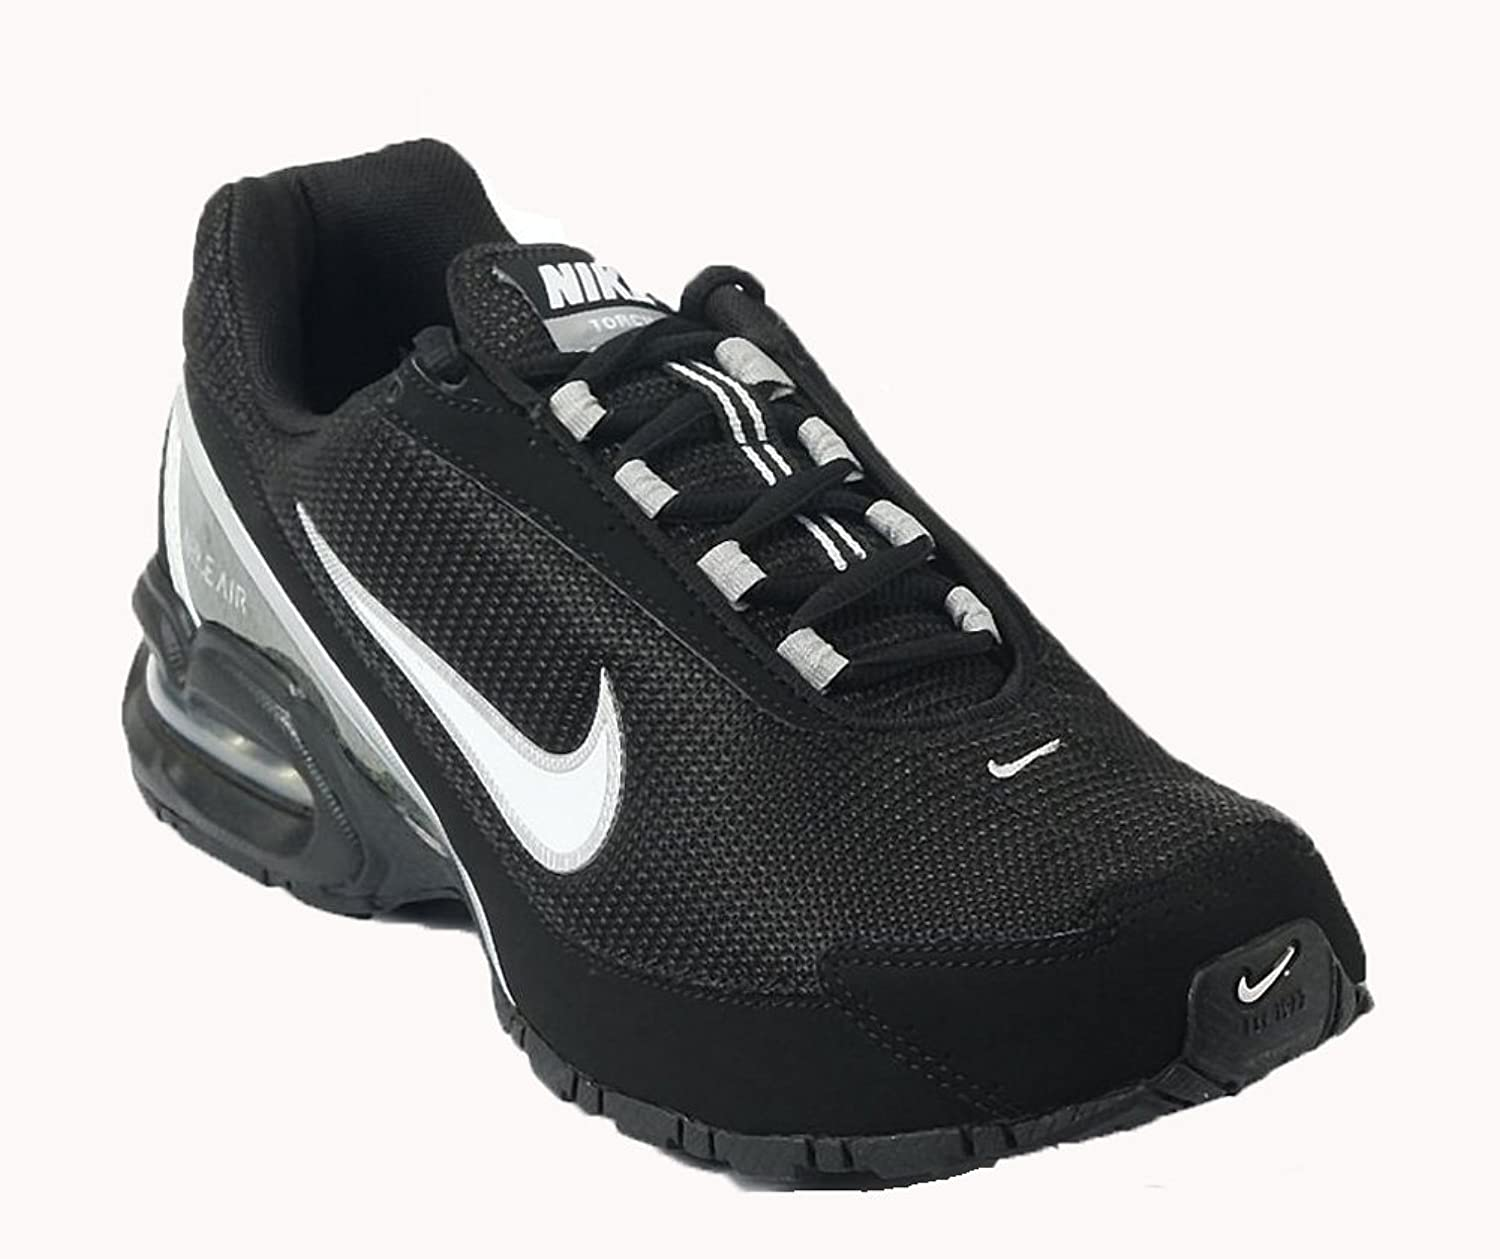 Nike air max torch 4 running shoe - Images For Nike Air Max Torch 3 Men S Running Shoes 11